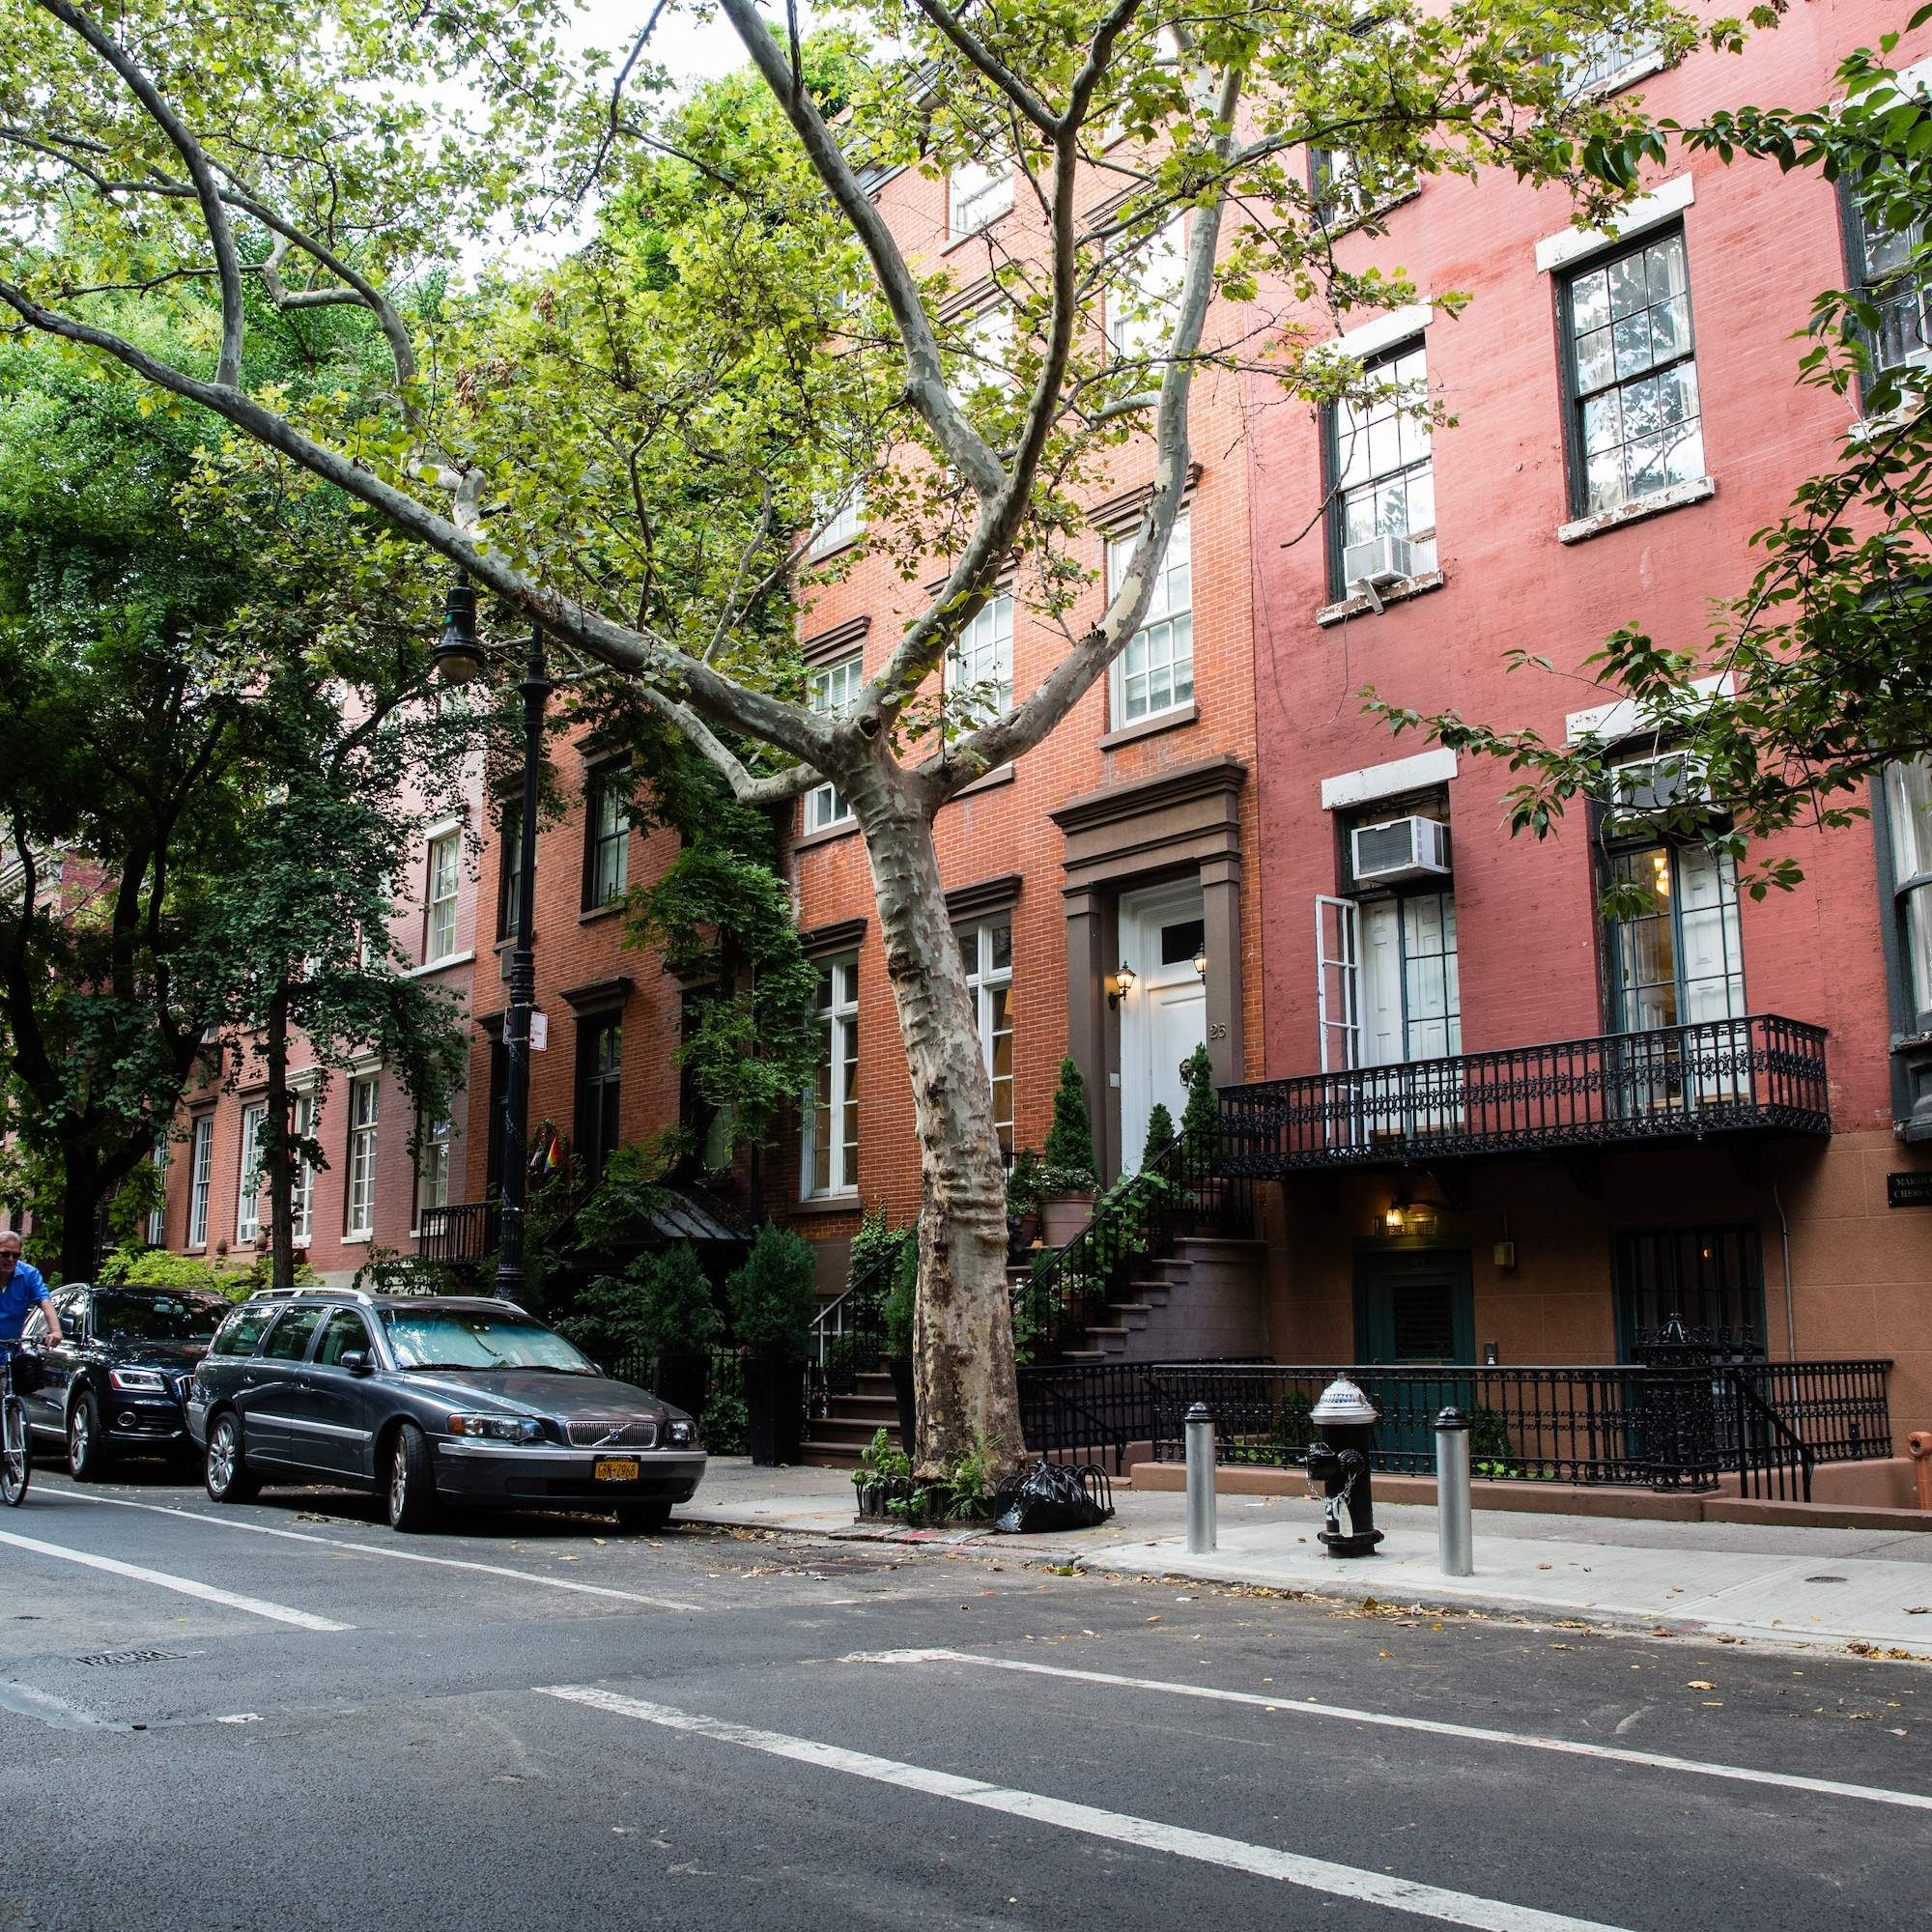 New York Apartments Outside: The Most Beautiful Streets In New York City